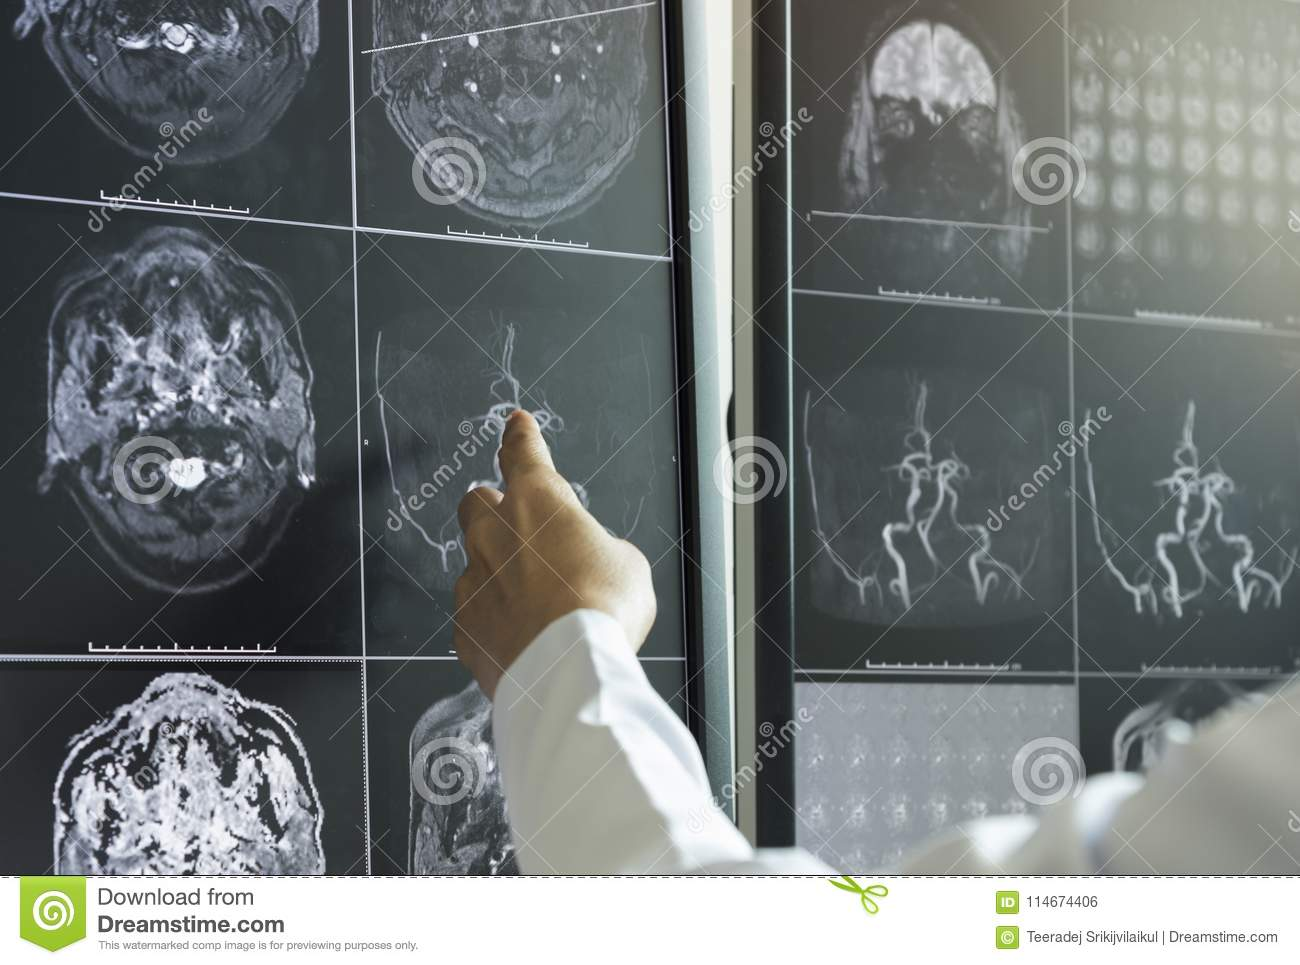 Doctor Pointing To Brain Anatomy On Mri Image Stock Photo Image Of